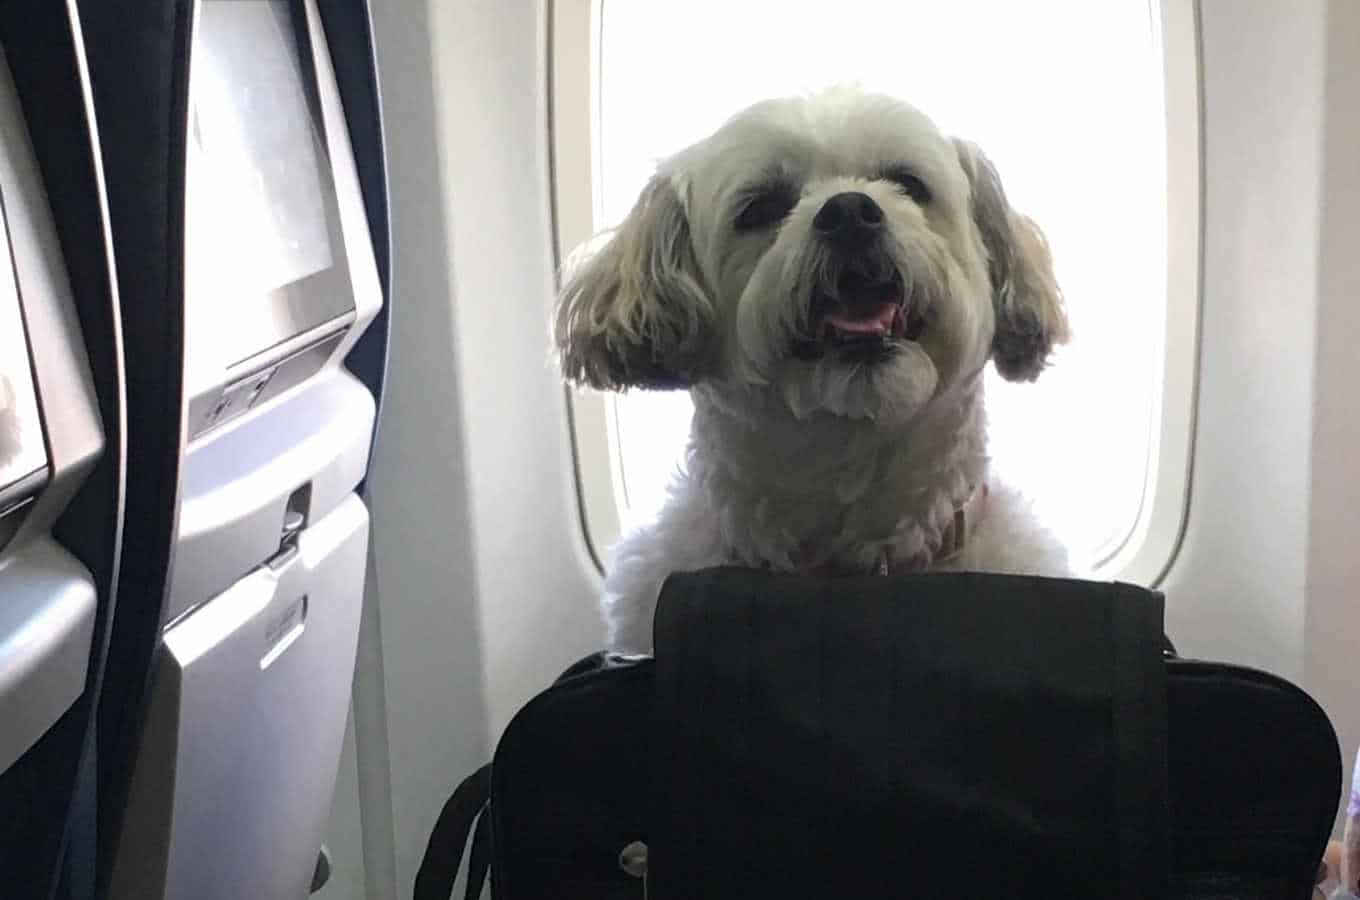 Delta Carry On Pet Fees